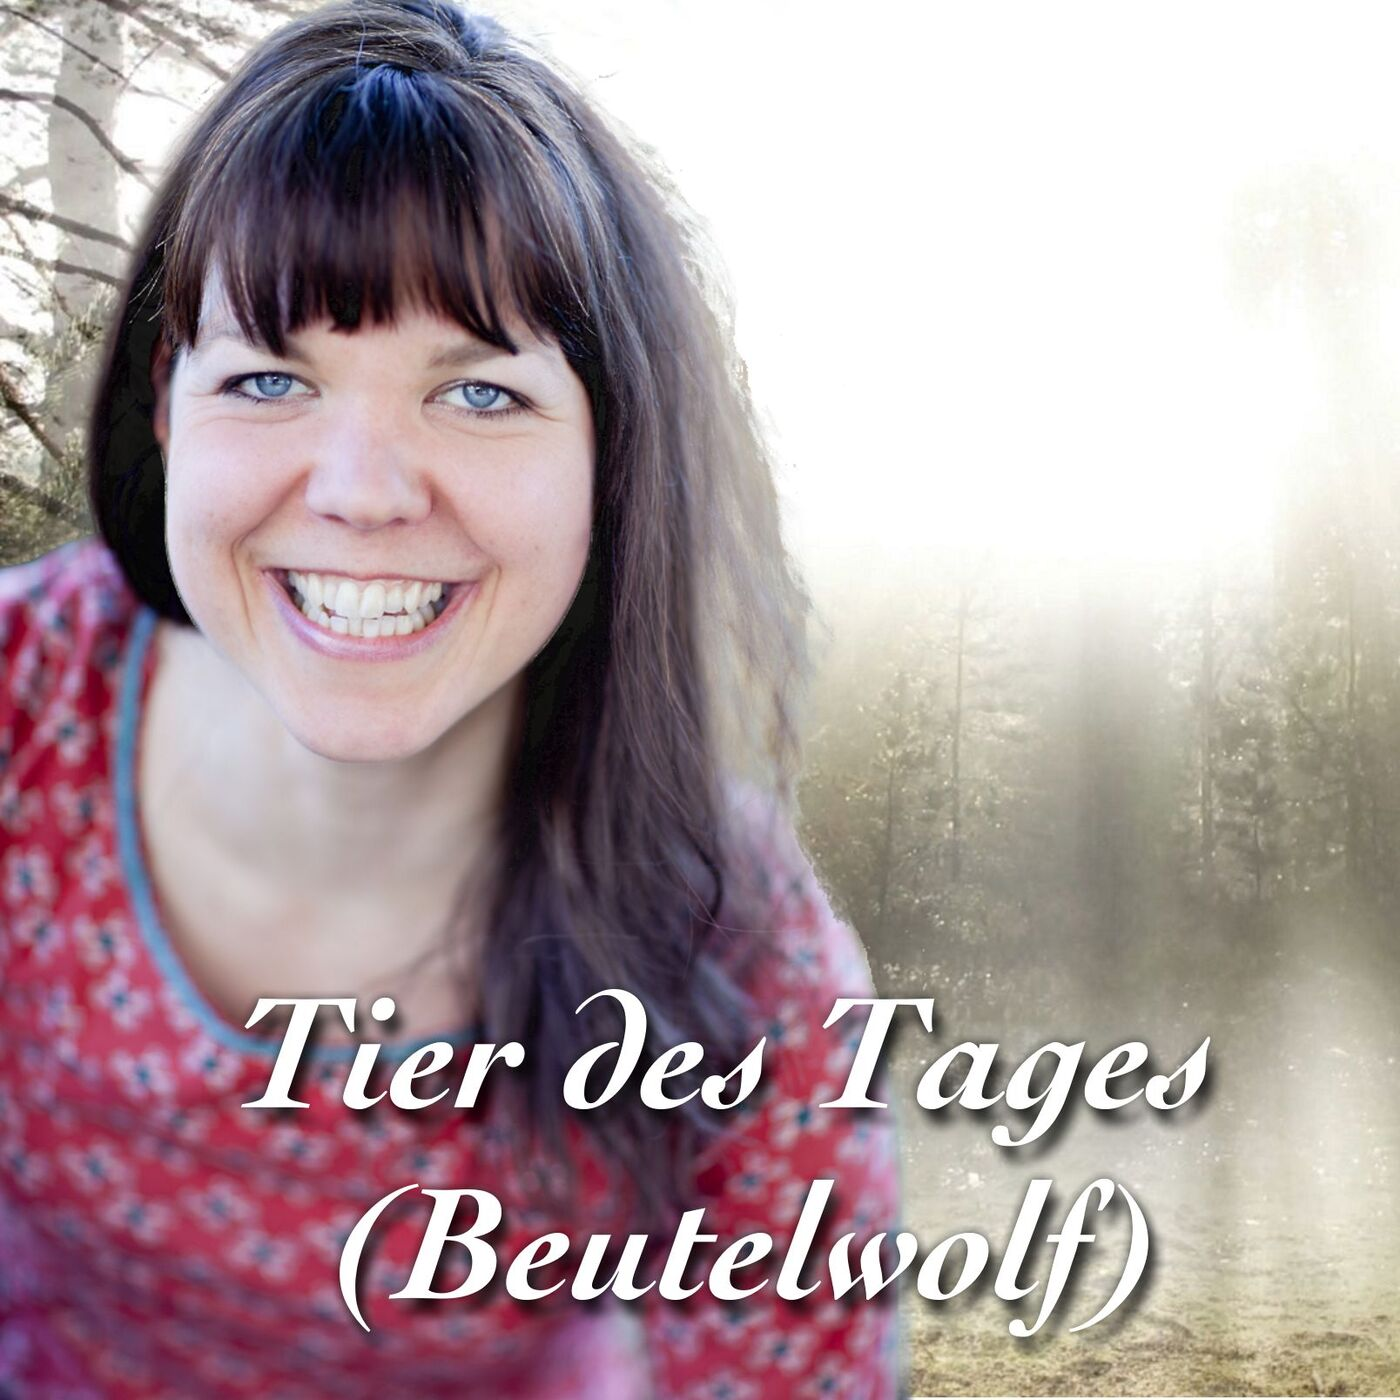 Tier des Tages (Beutelwolf)